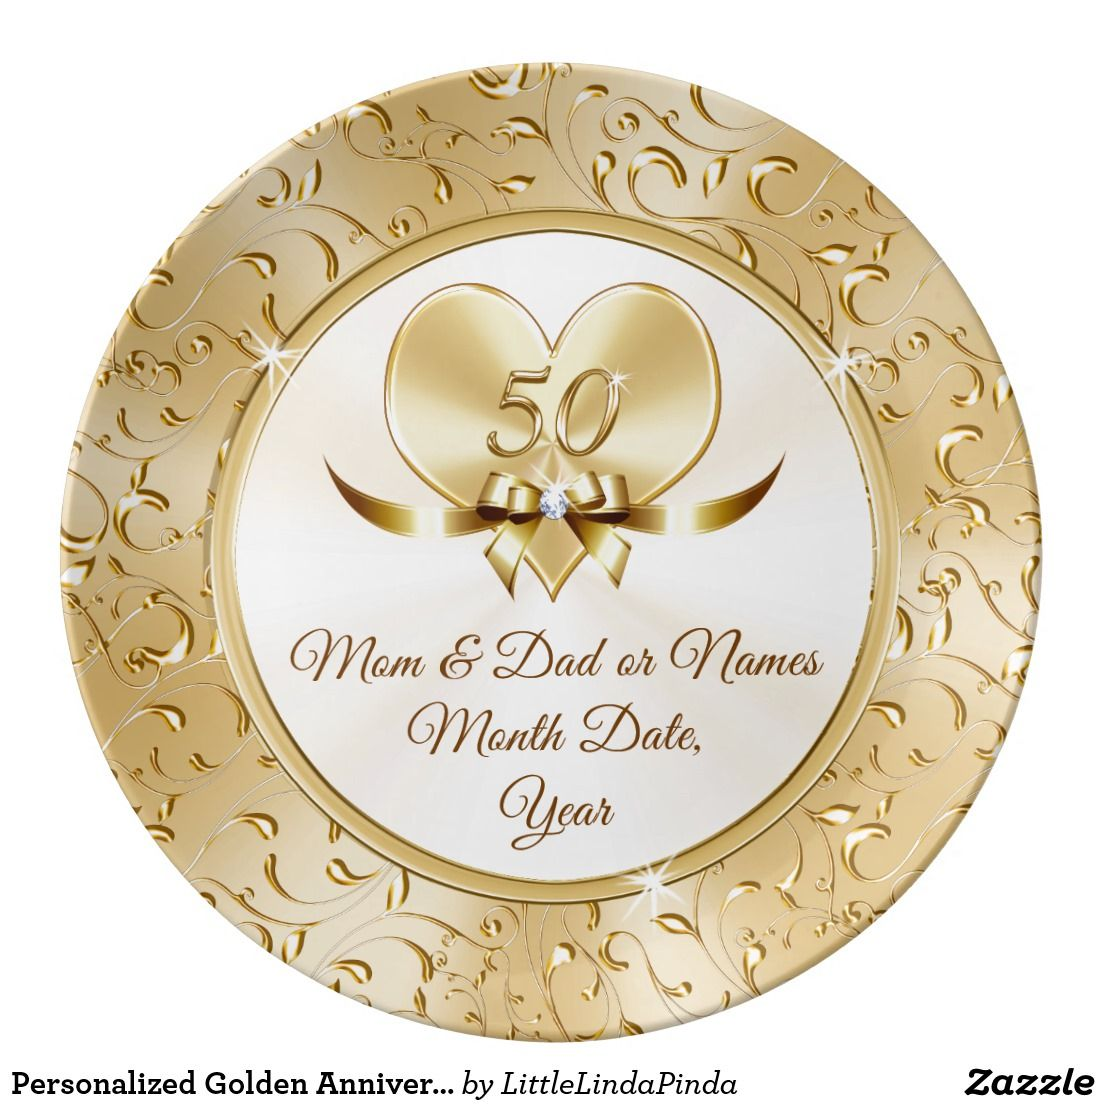 Personalized Golden Anniversary Gifts for Parents Dinner